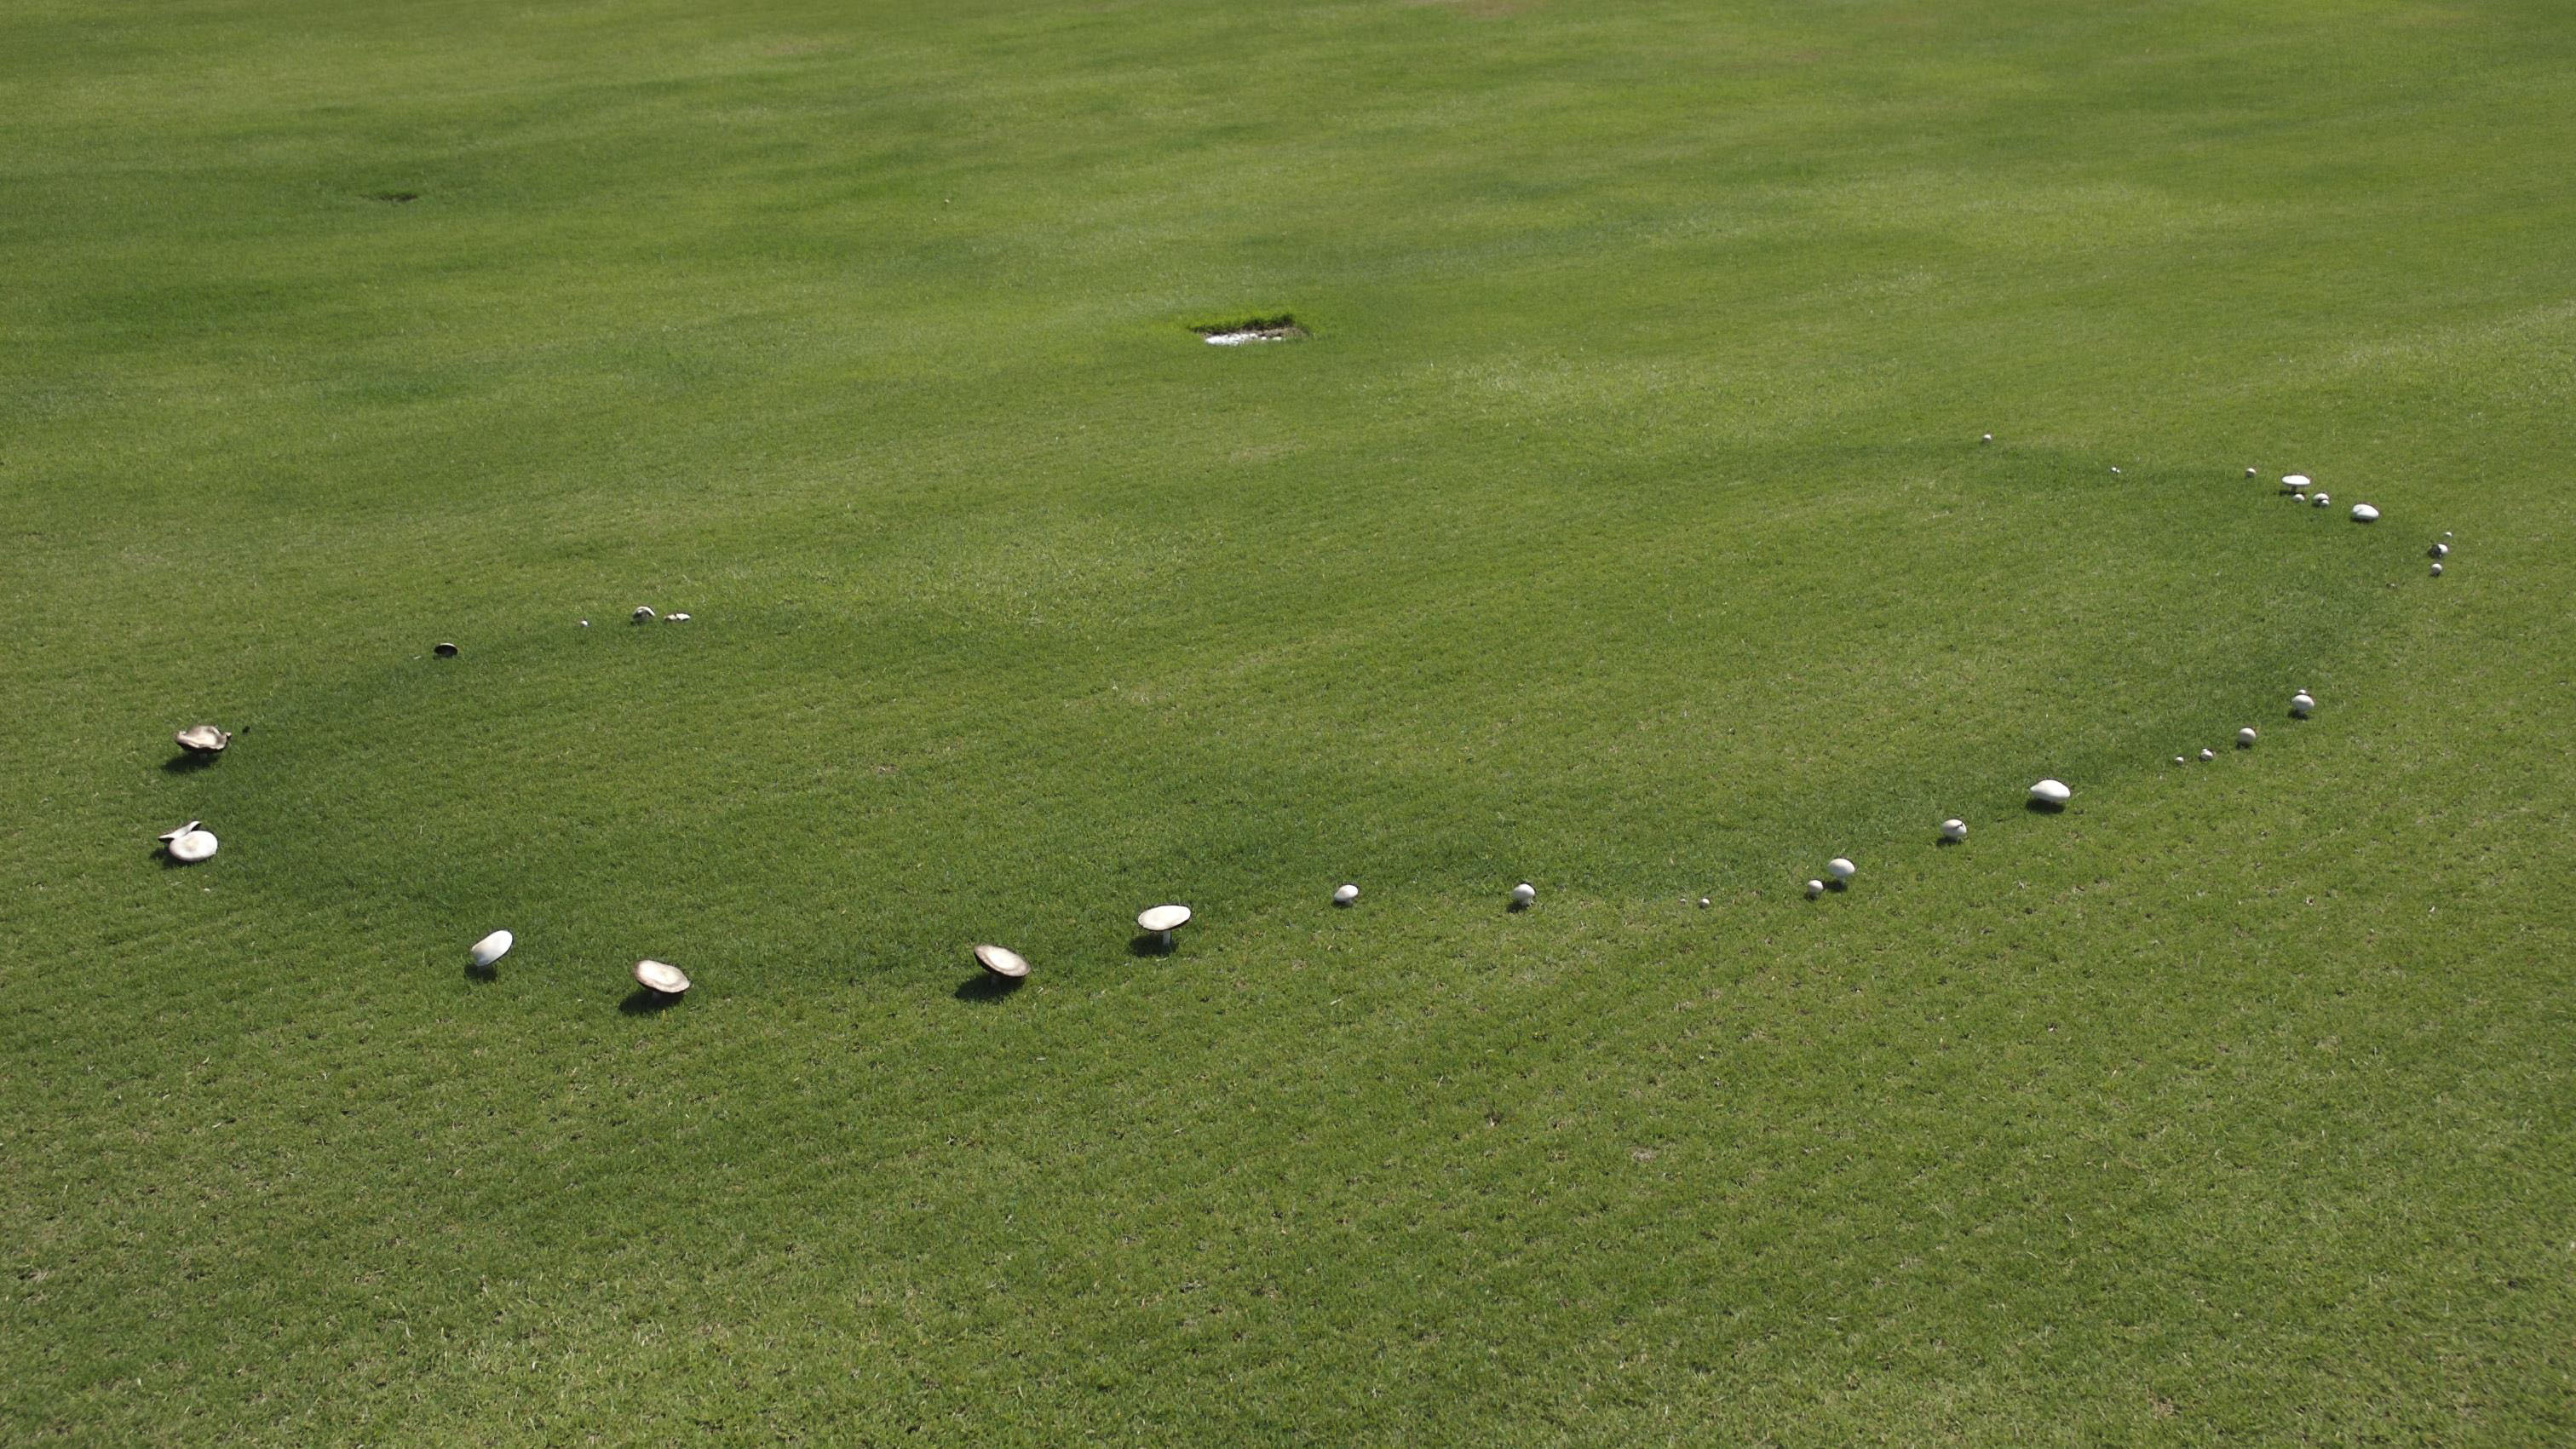 fairy-ring-bermudagrass-signs-mushrooms_NCSU